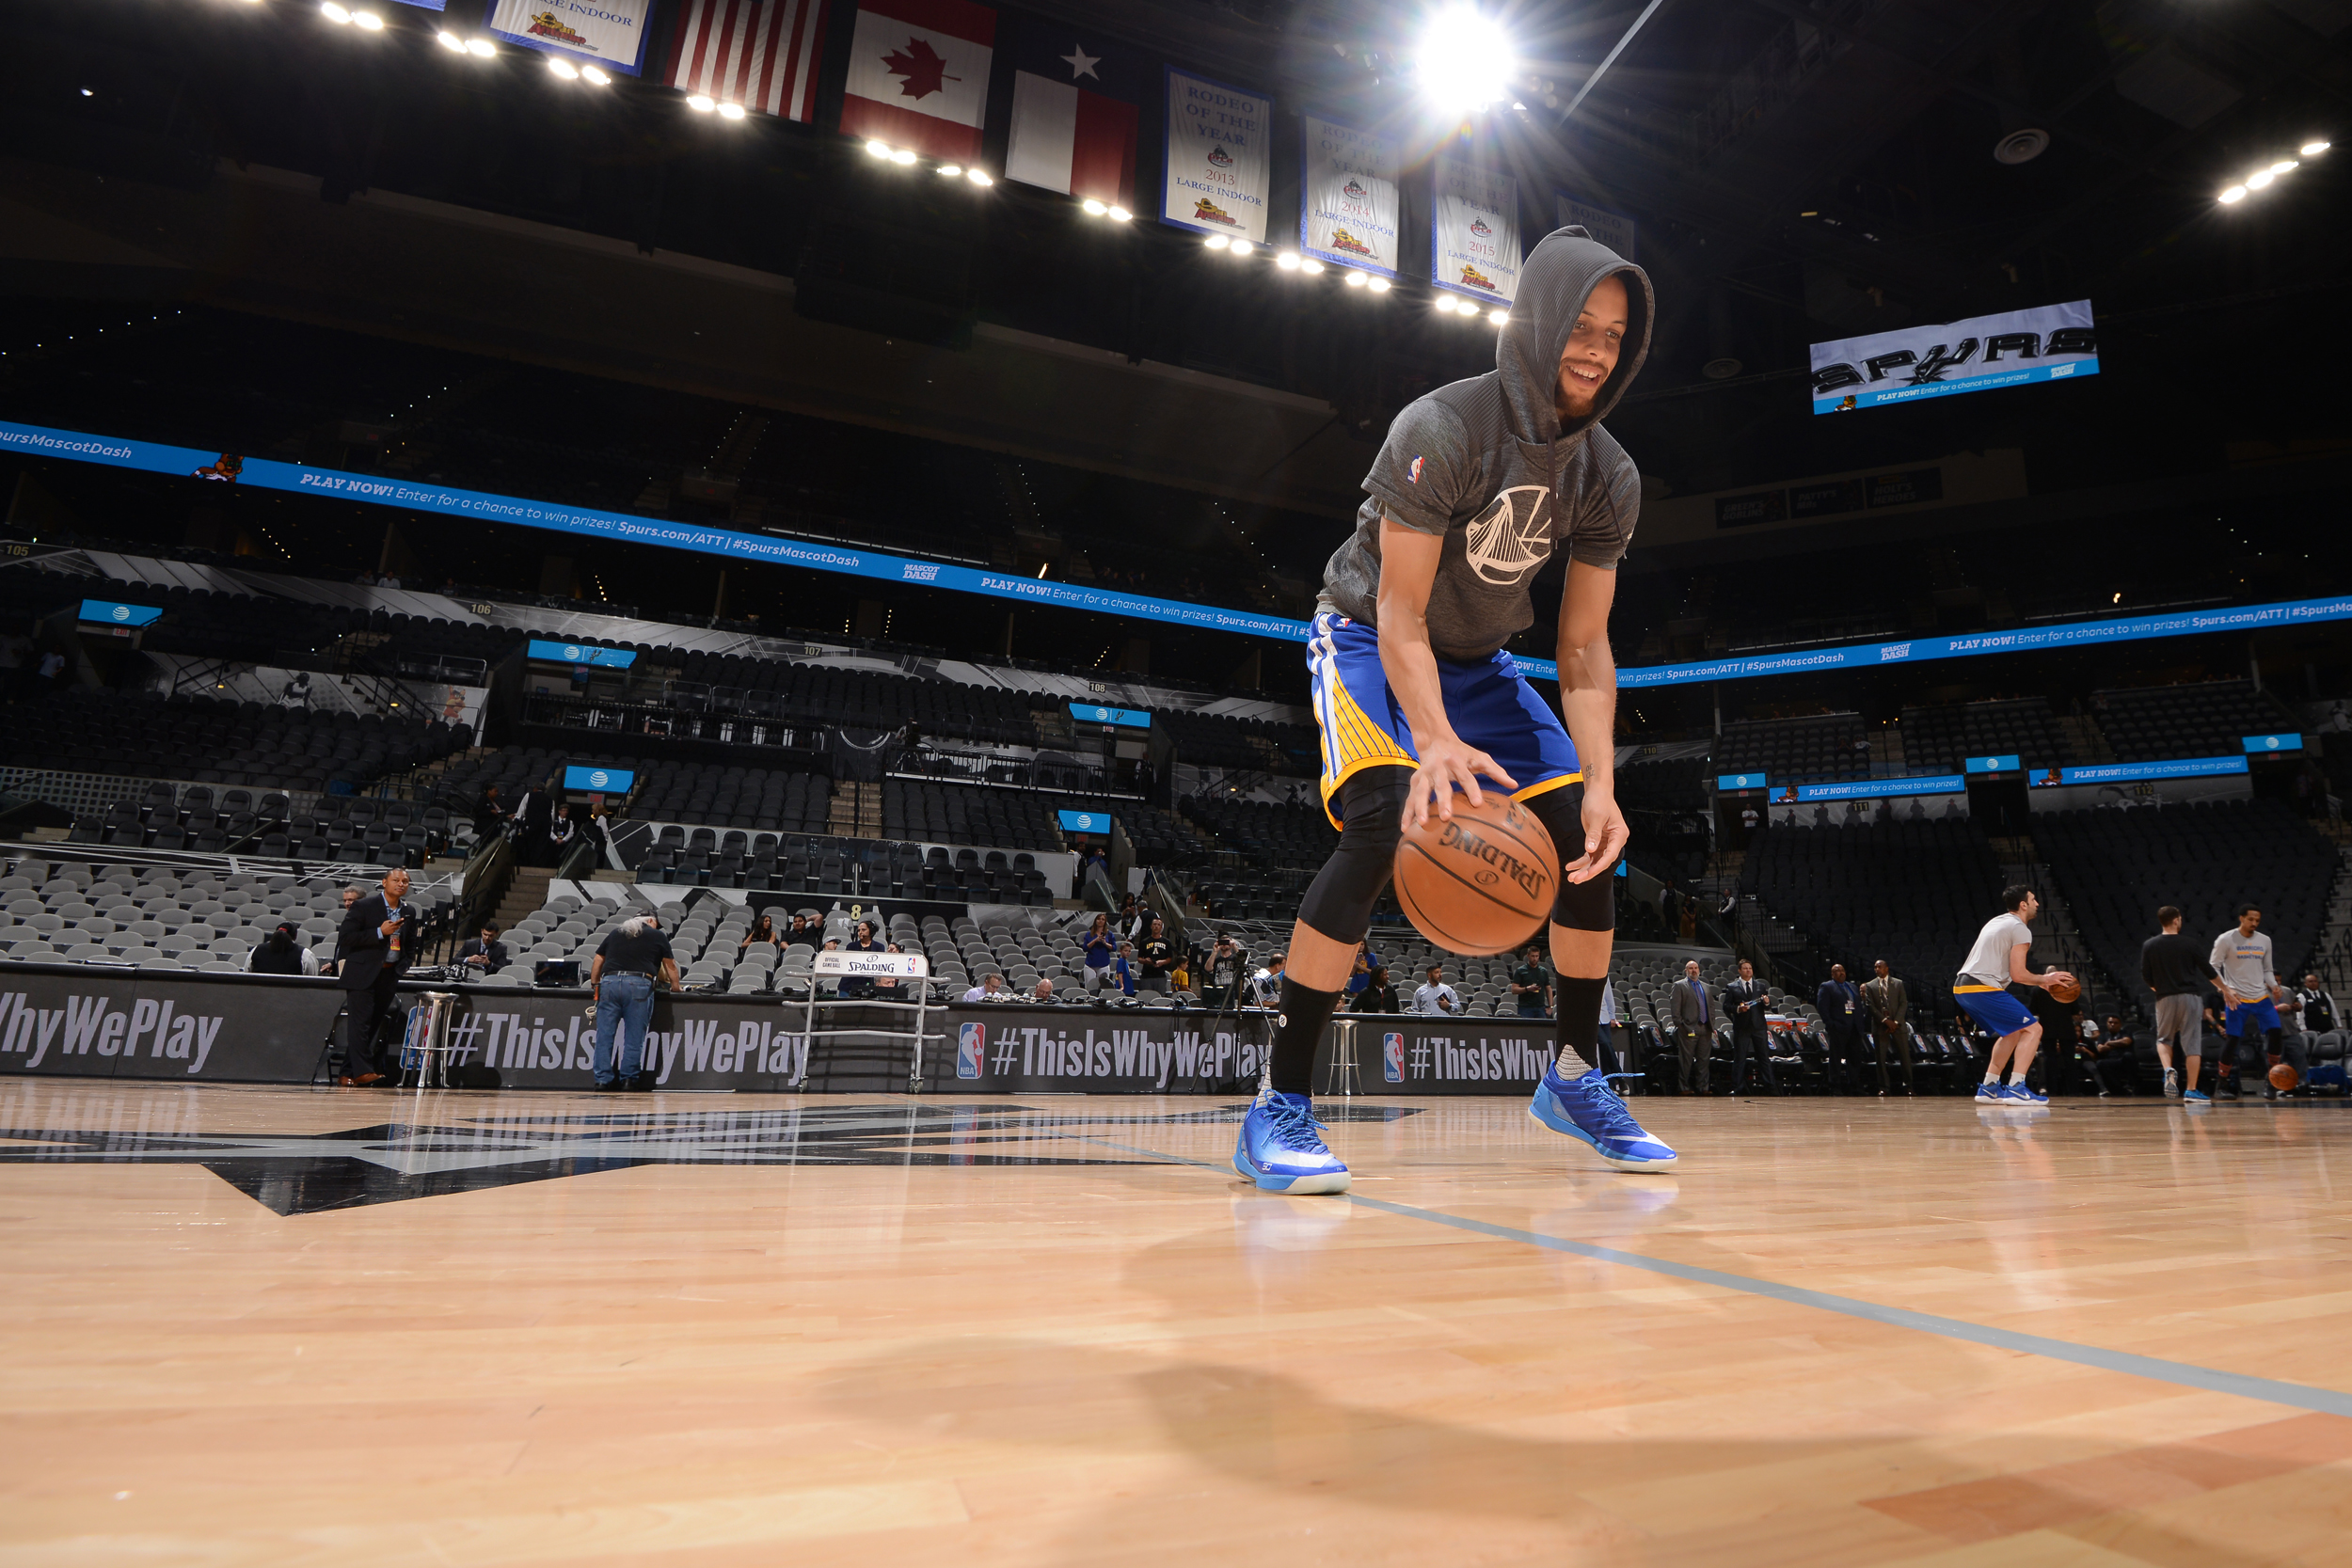 Stephen Curry  30 of the Golden State Warriors warms up before the game  against the San Antonio Spurs on March 29 f12848092